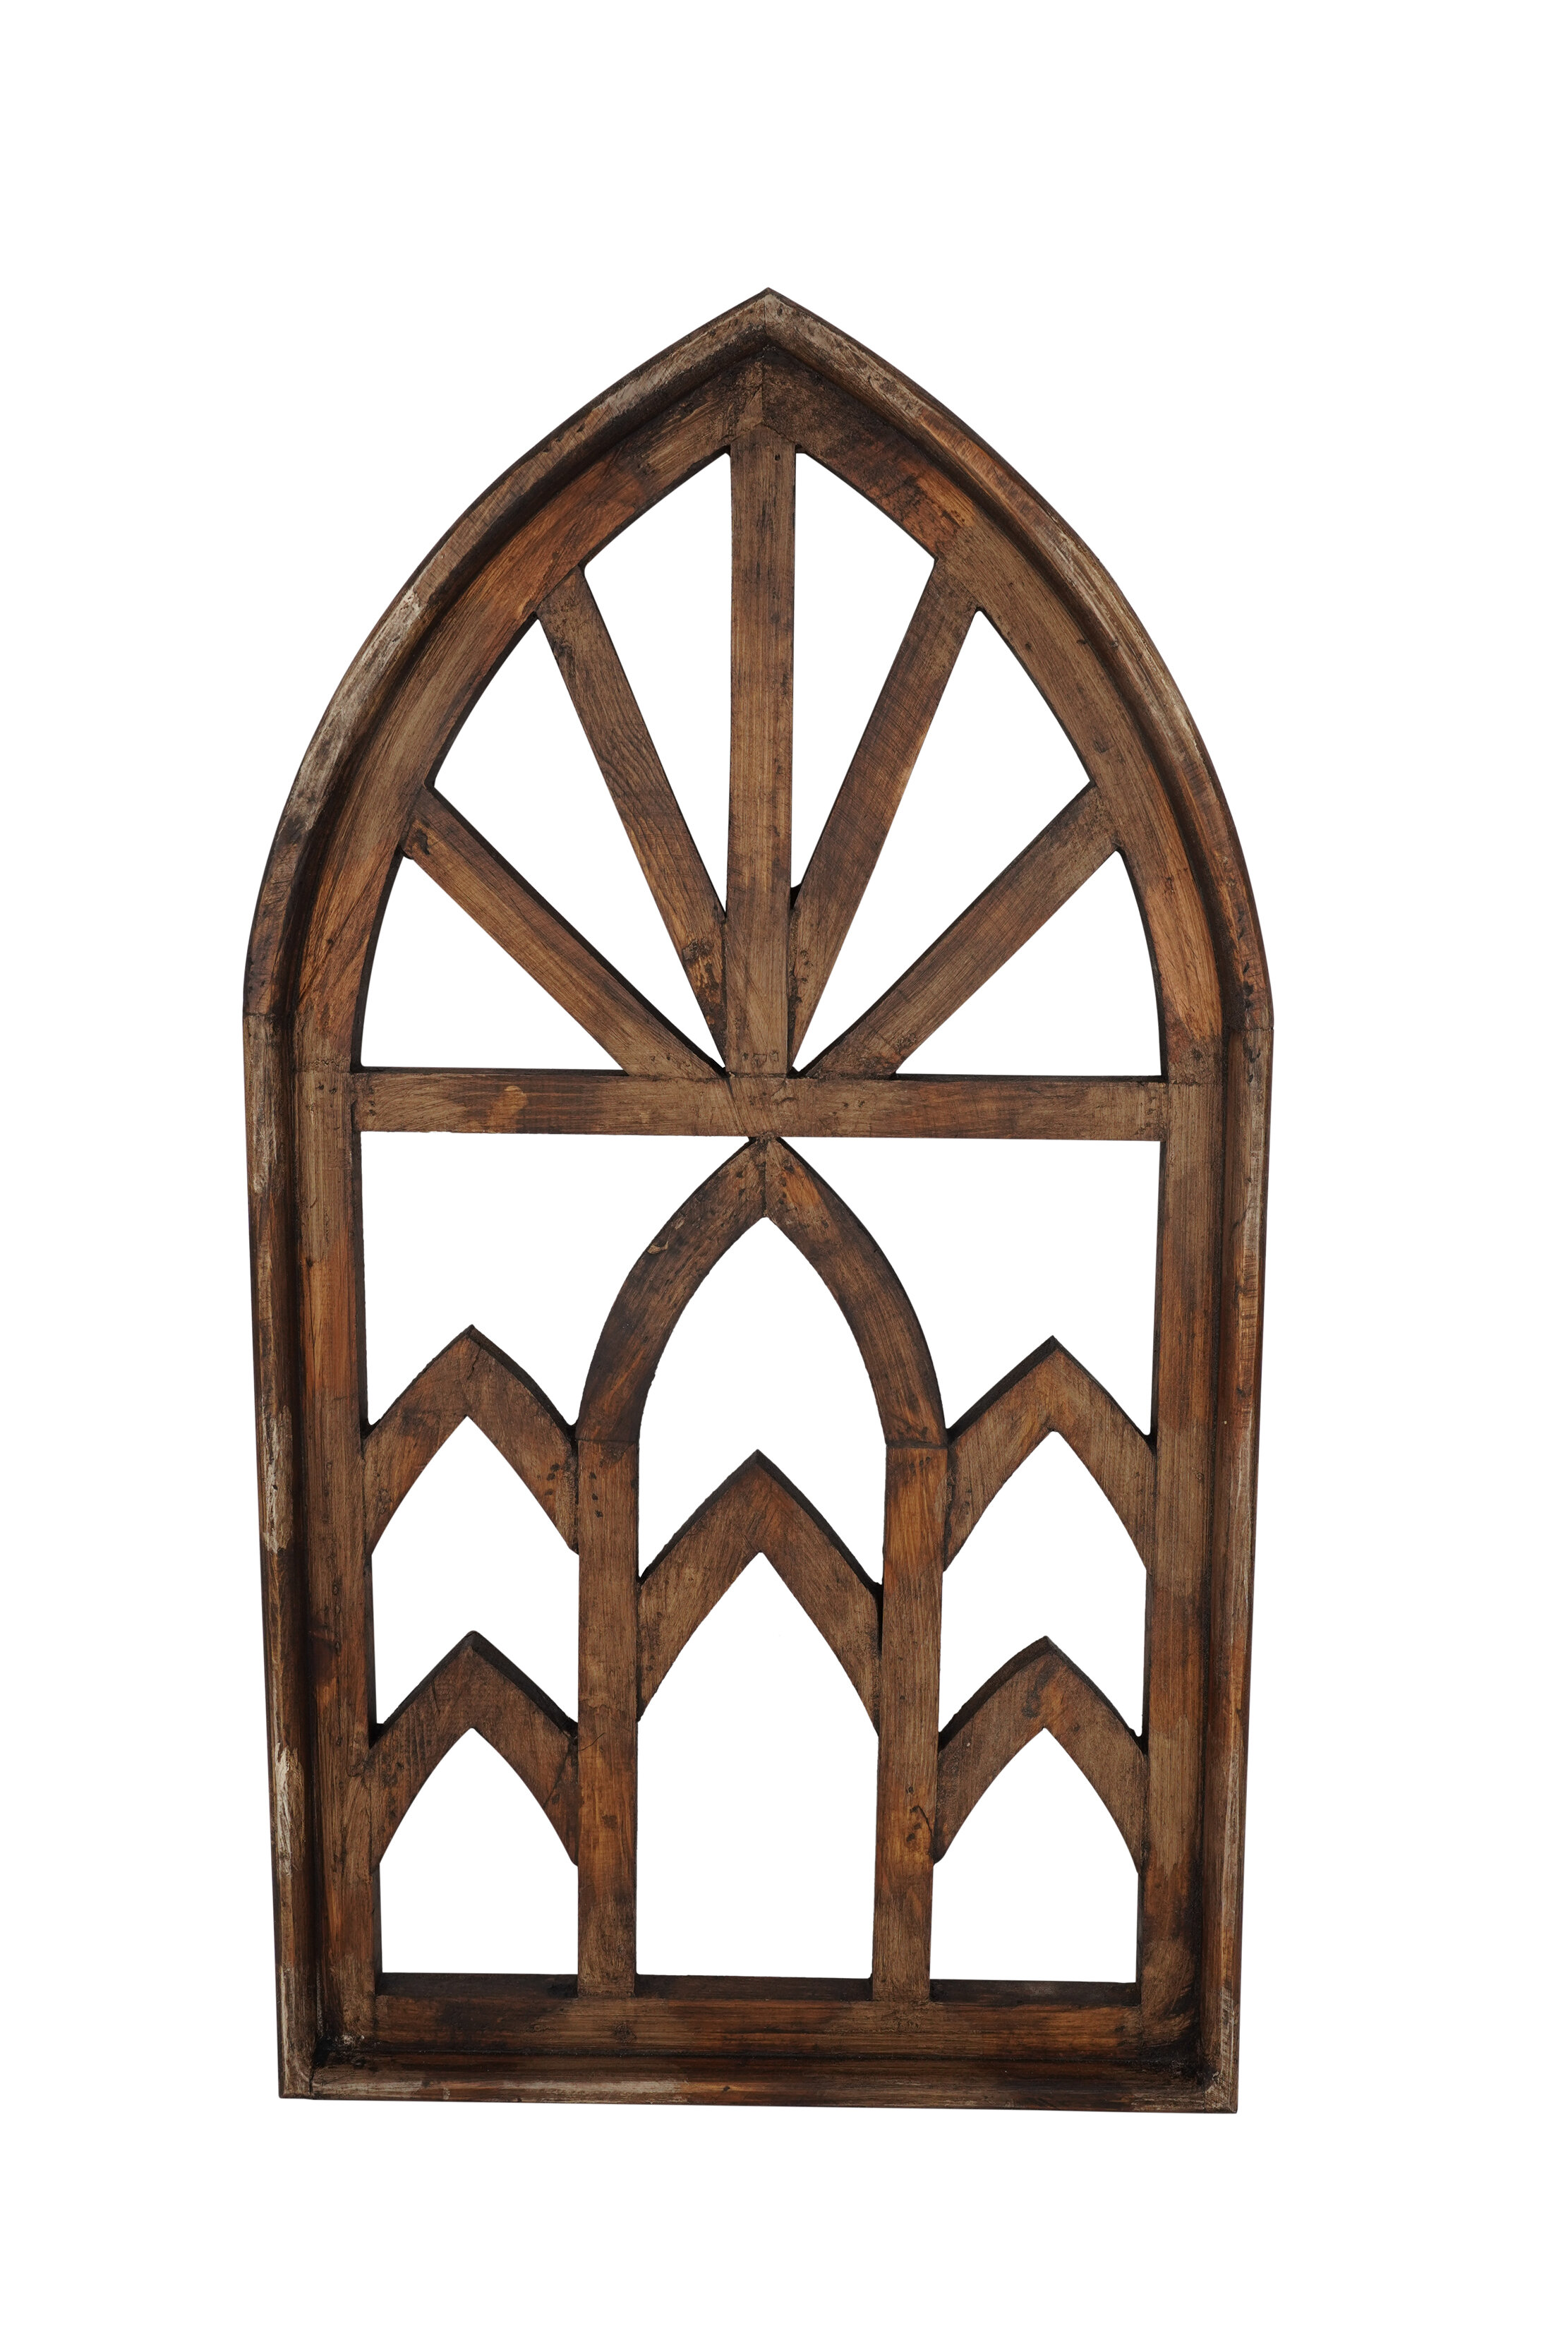 Ophelia Co Rustic Architectural Window Wall Decor Reviews Wayfair